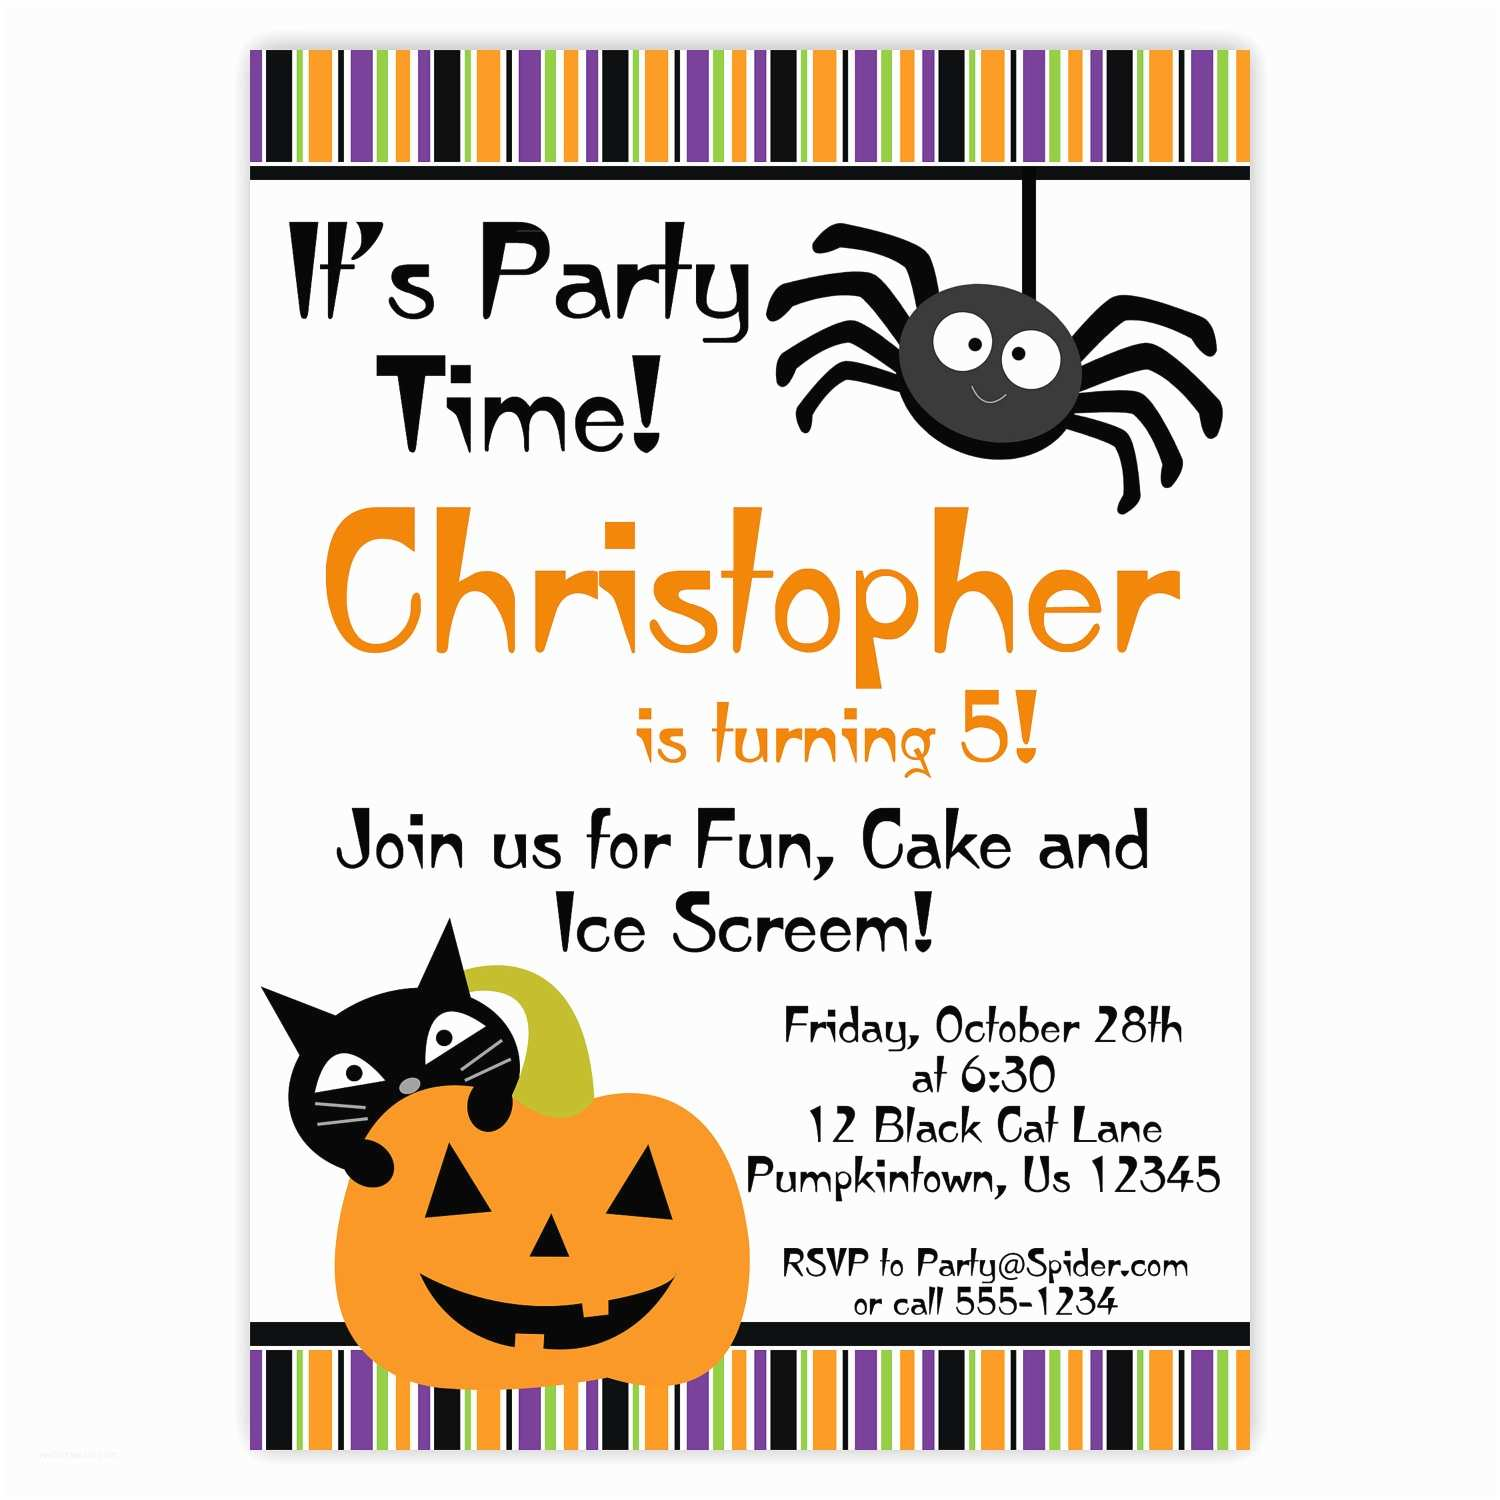 photo about Free Printable Halloween Invitation Template named Free of charge Halloween Social gathering Invites Cost-free Printable Halloween